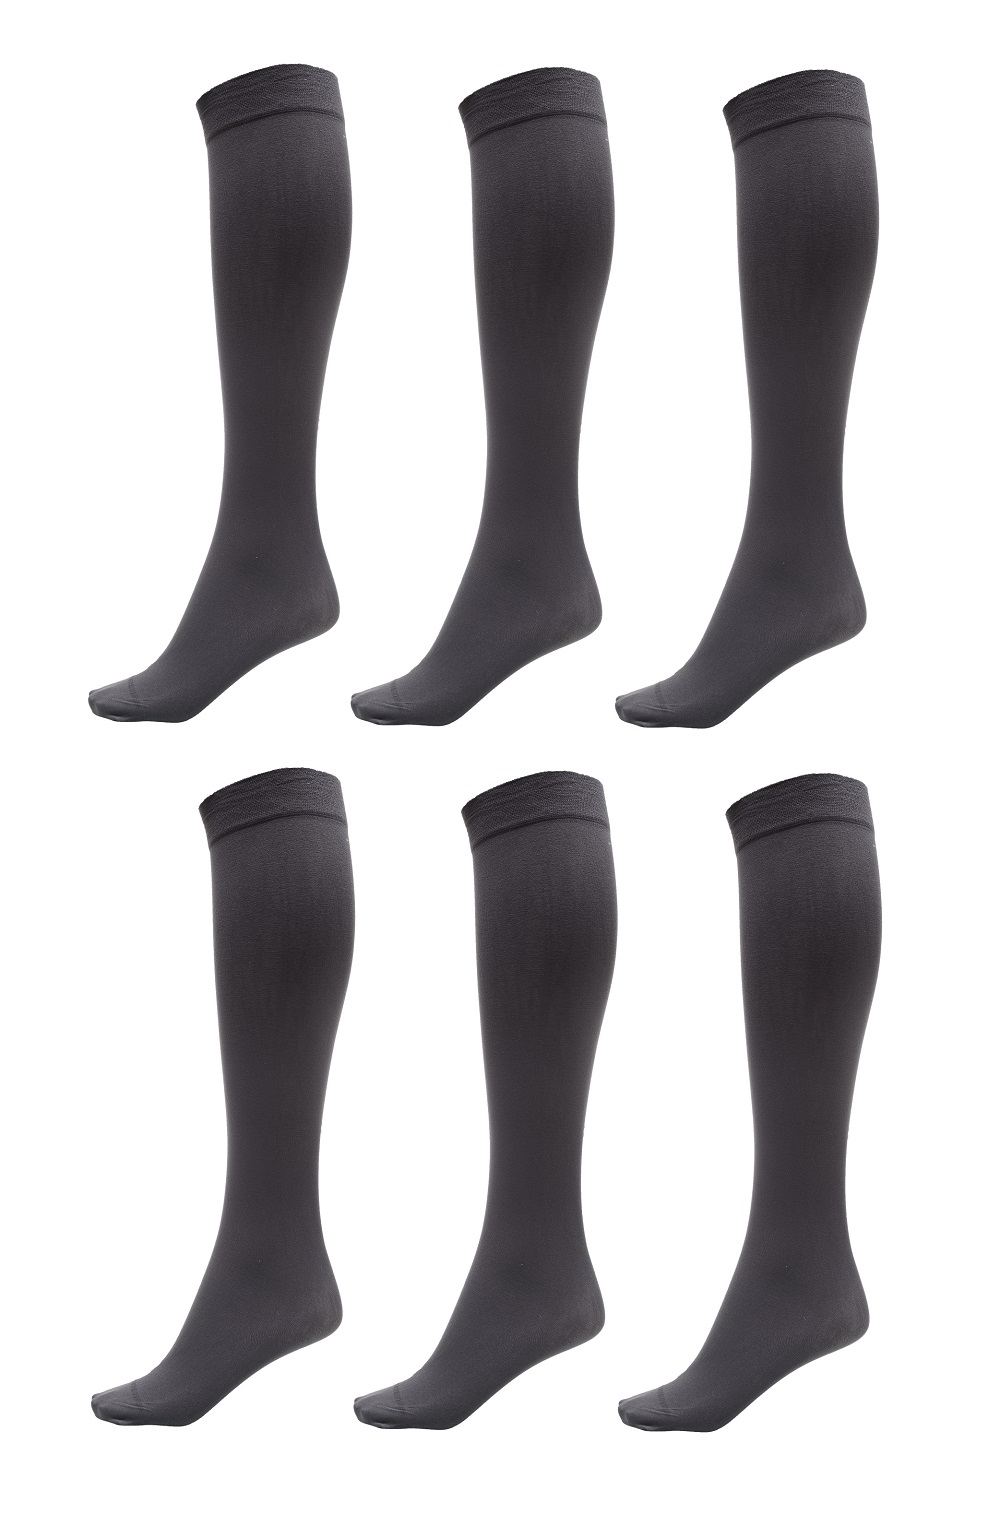 9-11 WOMEN/'S BLACK KNEE HIGH TROUSER NYLON SOCKS 1 PAIR NEW WITH TAG